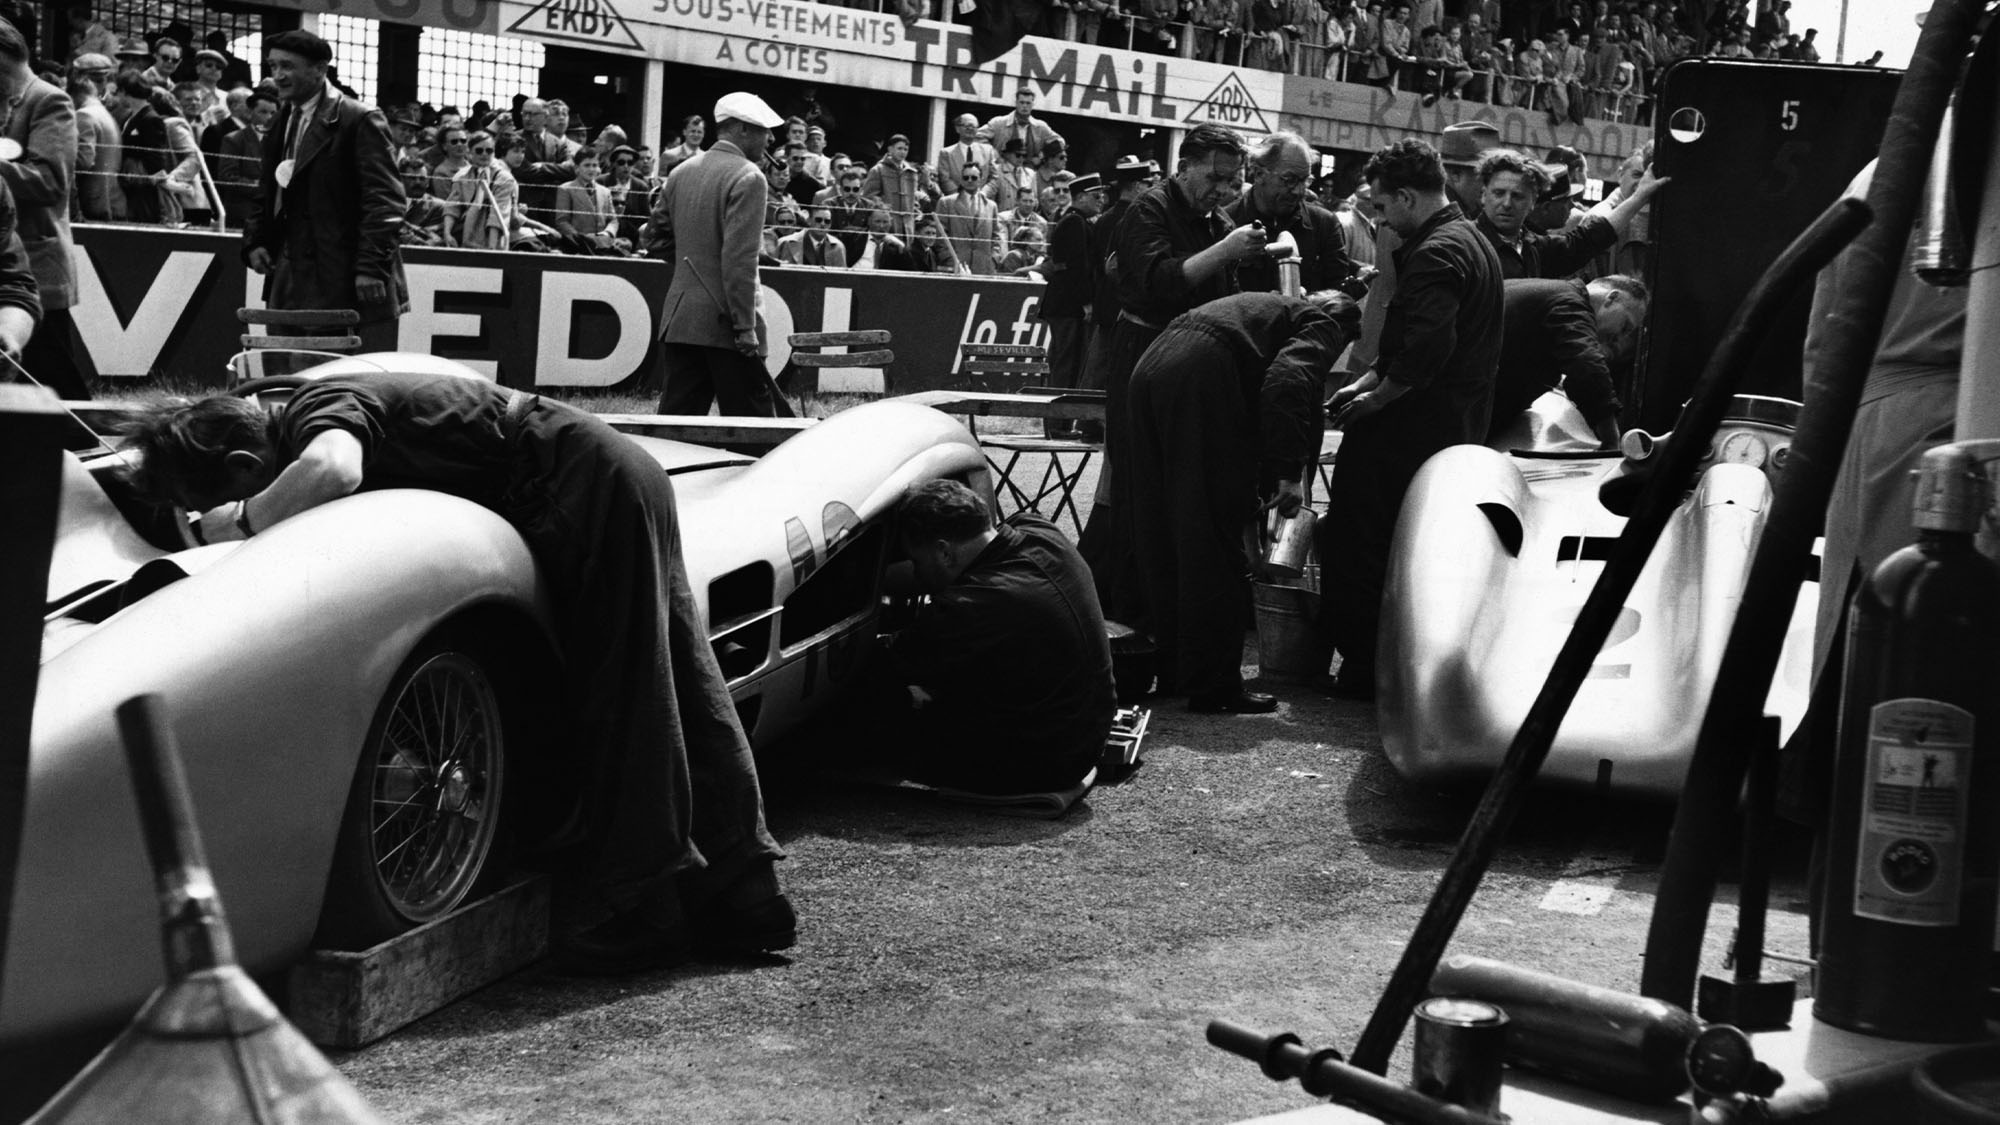 Pit mechanics work on the Mercedes-Benz racecars which are competing well in the French Grand Prix. (Photo by © Hulton-Deutsch Collection/CORBIS/Corbis via Getty Images)